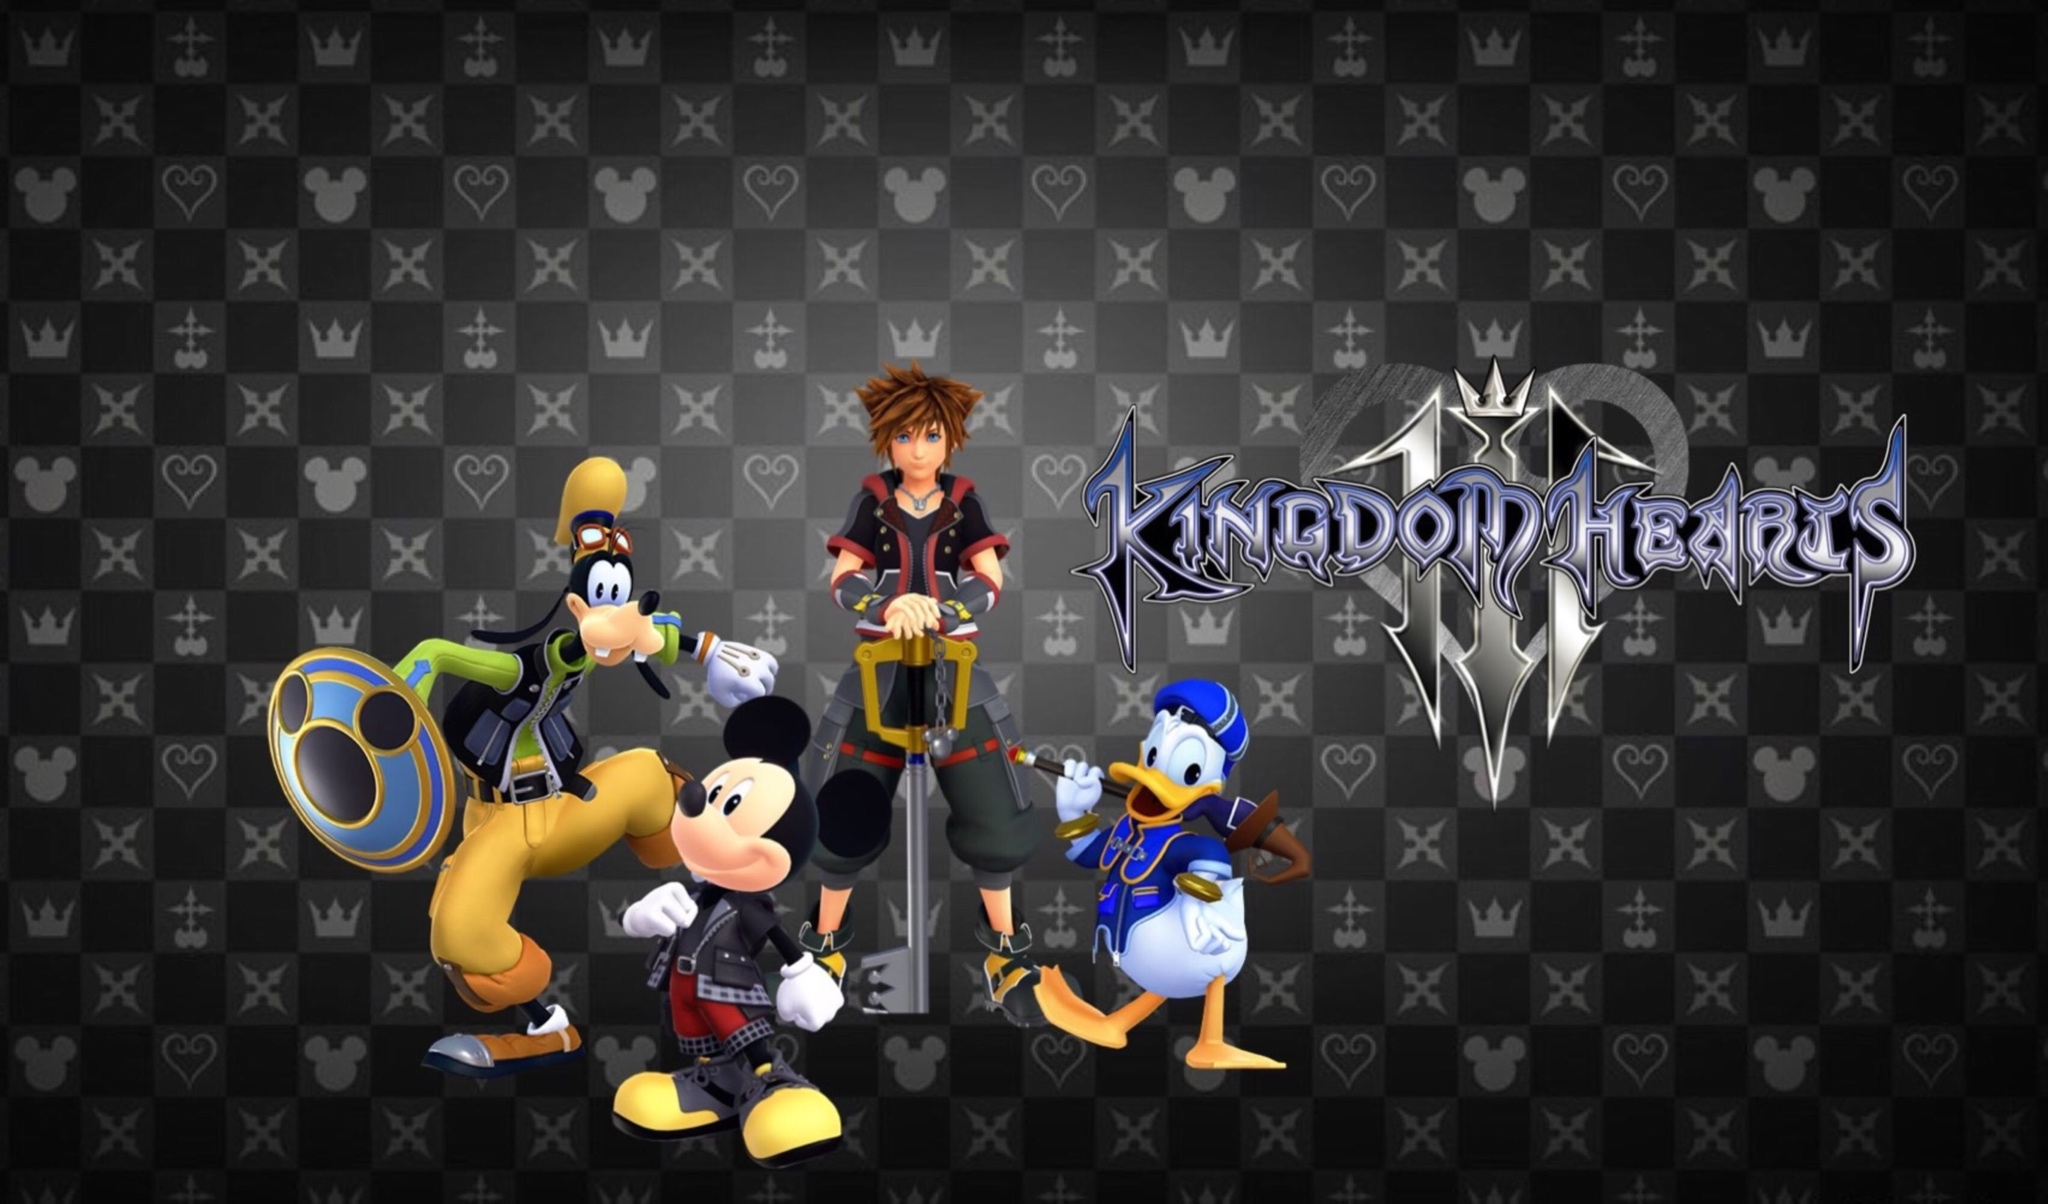 Kh3 Wallpaper Hd Posted By Ryan Thompson